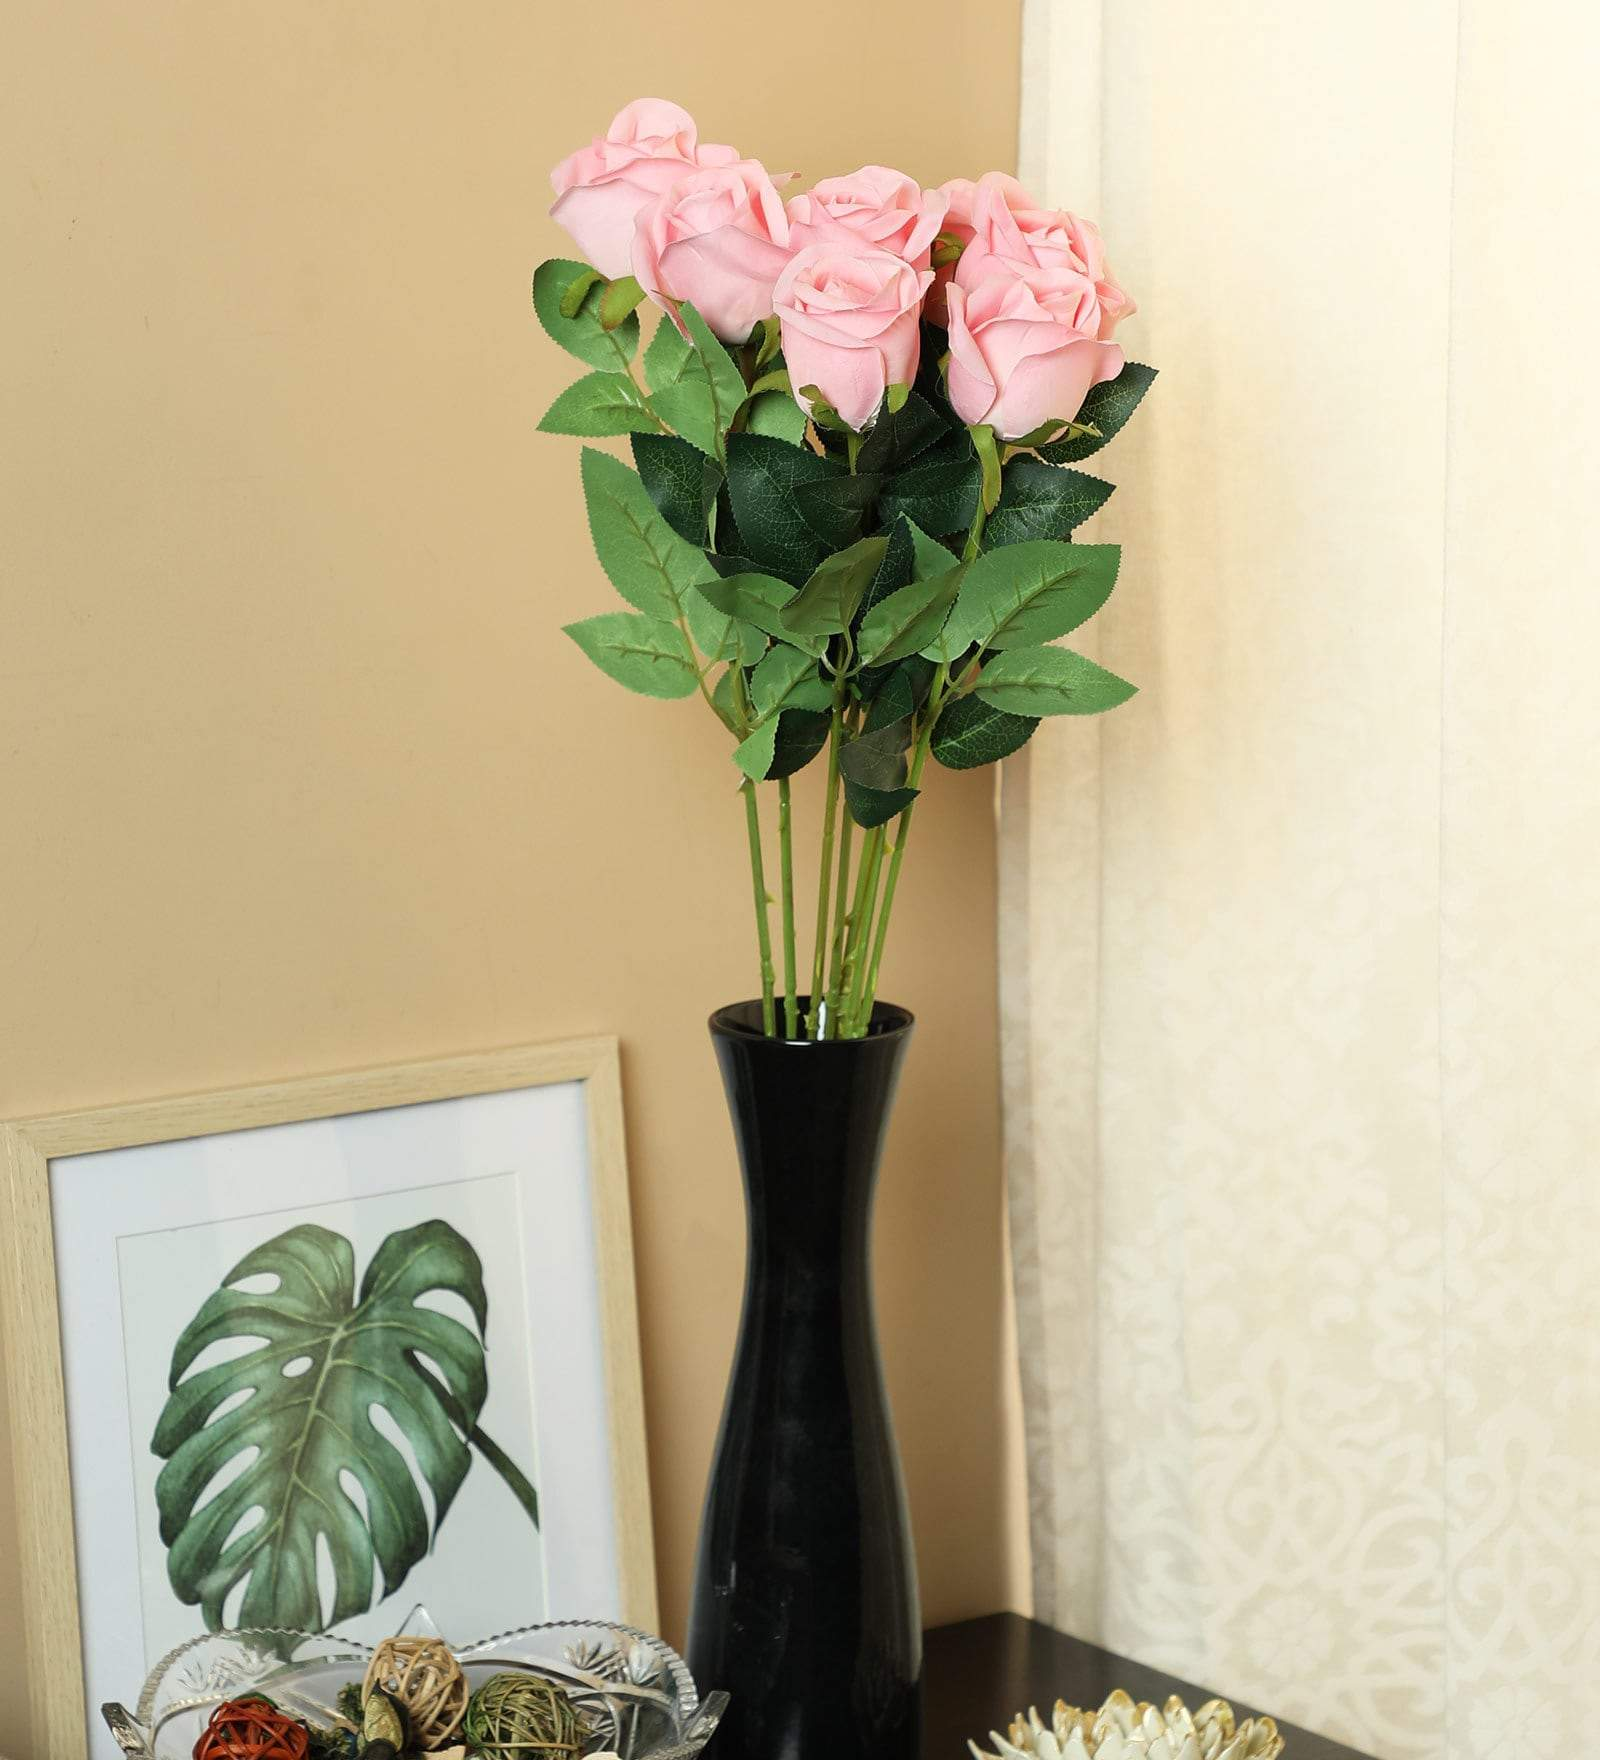 PolliNation Stunning Pink Rose Artificial Flower for Home (Pack of 7, 25 INCH) - Artificial Flowers & Plants - PolliNation